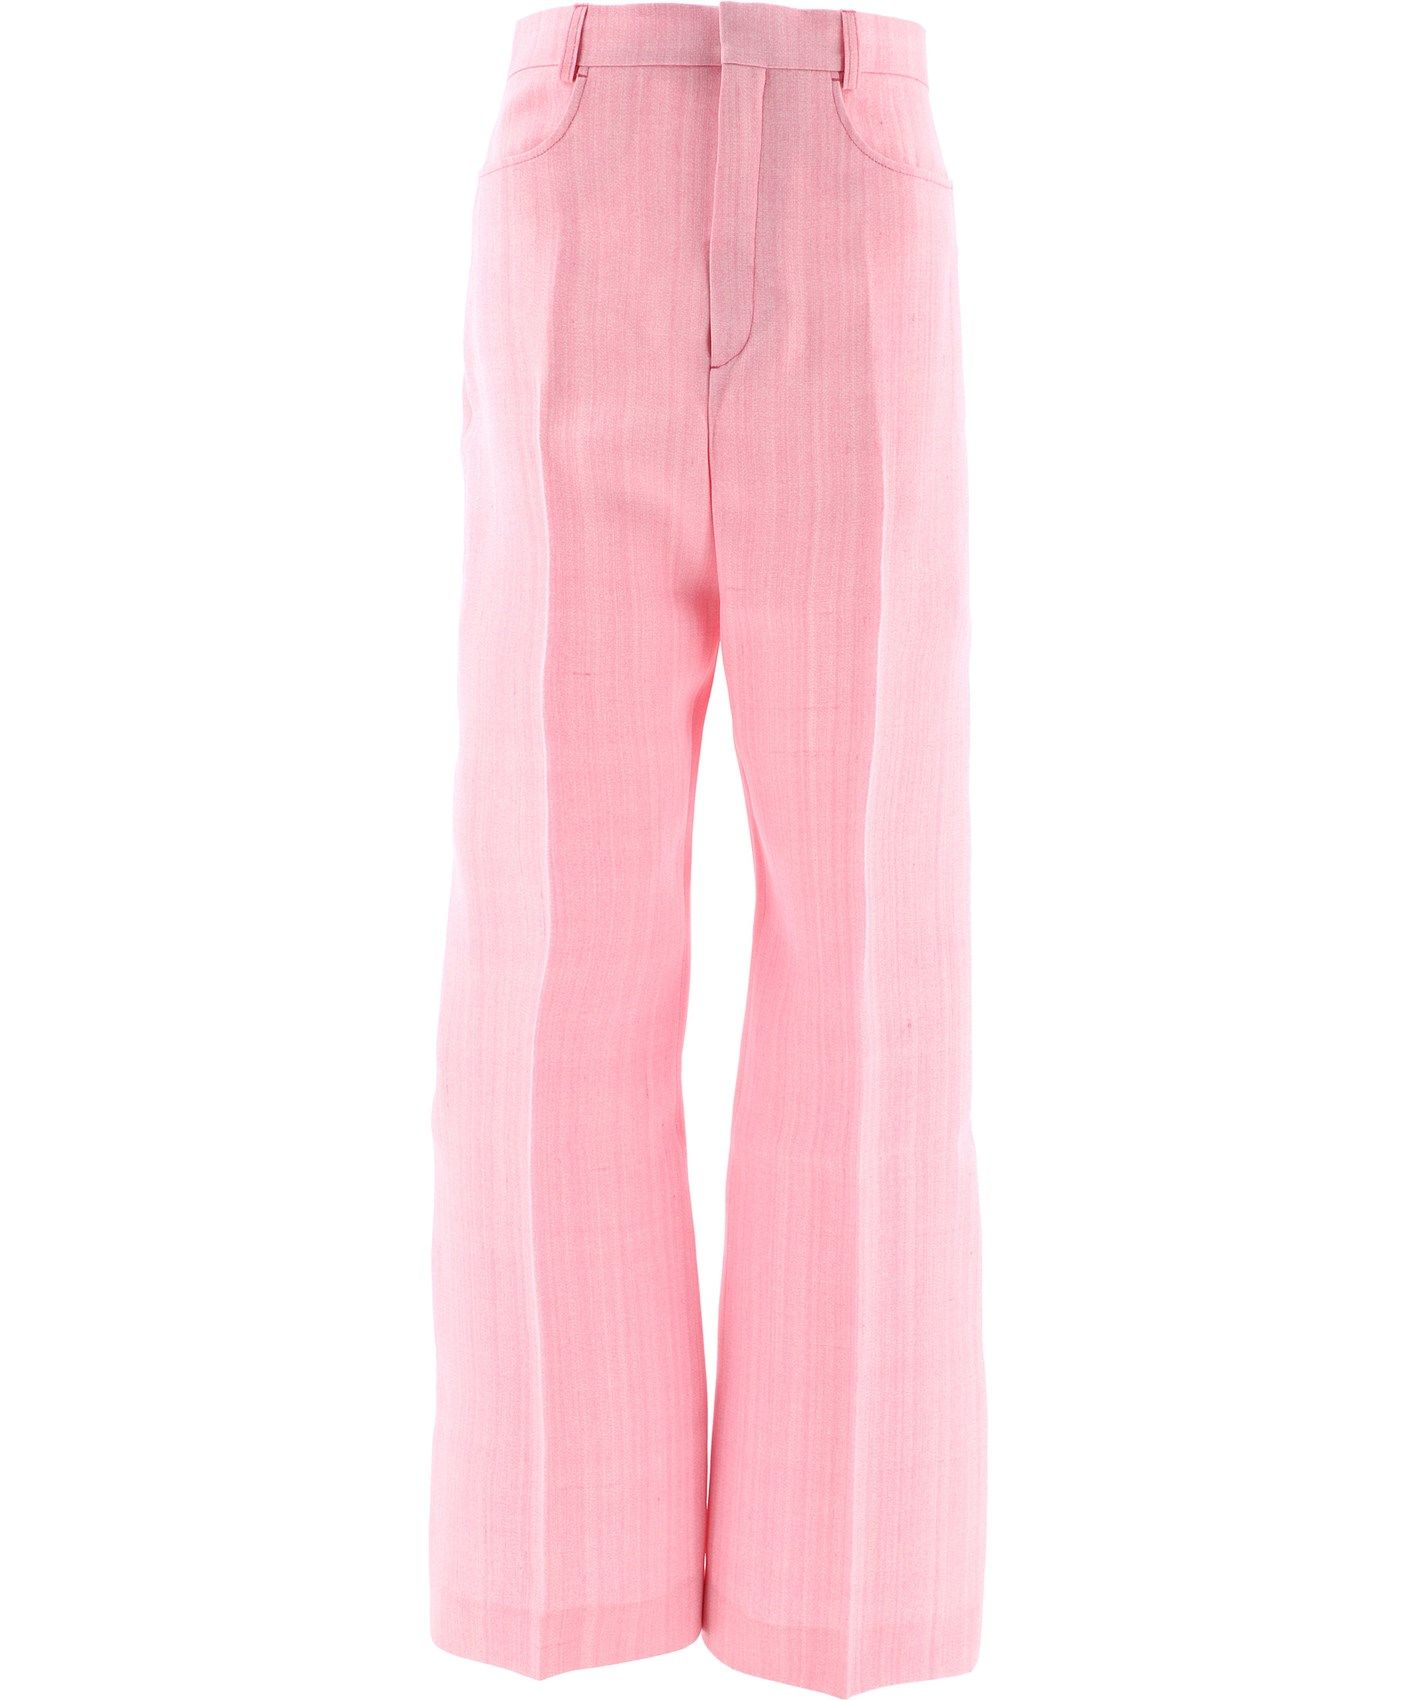 Jacquemus JACQUEMUS WOMEN'S PINK OTHER MATERIALS PANTS